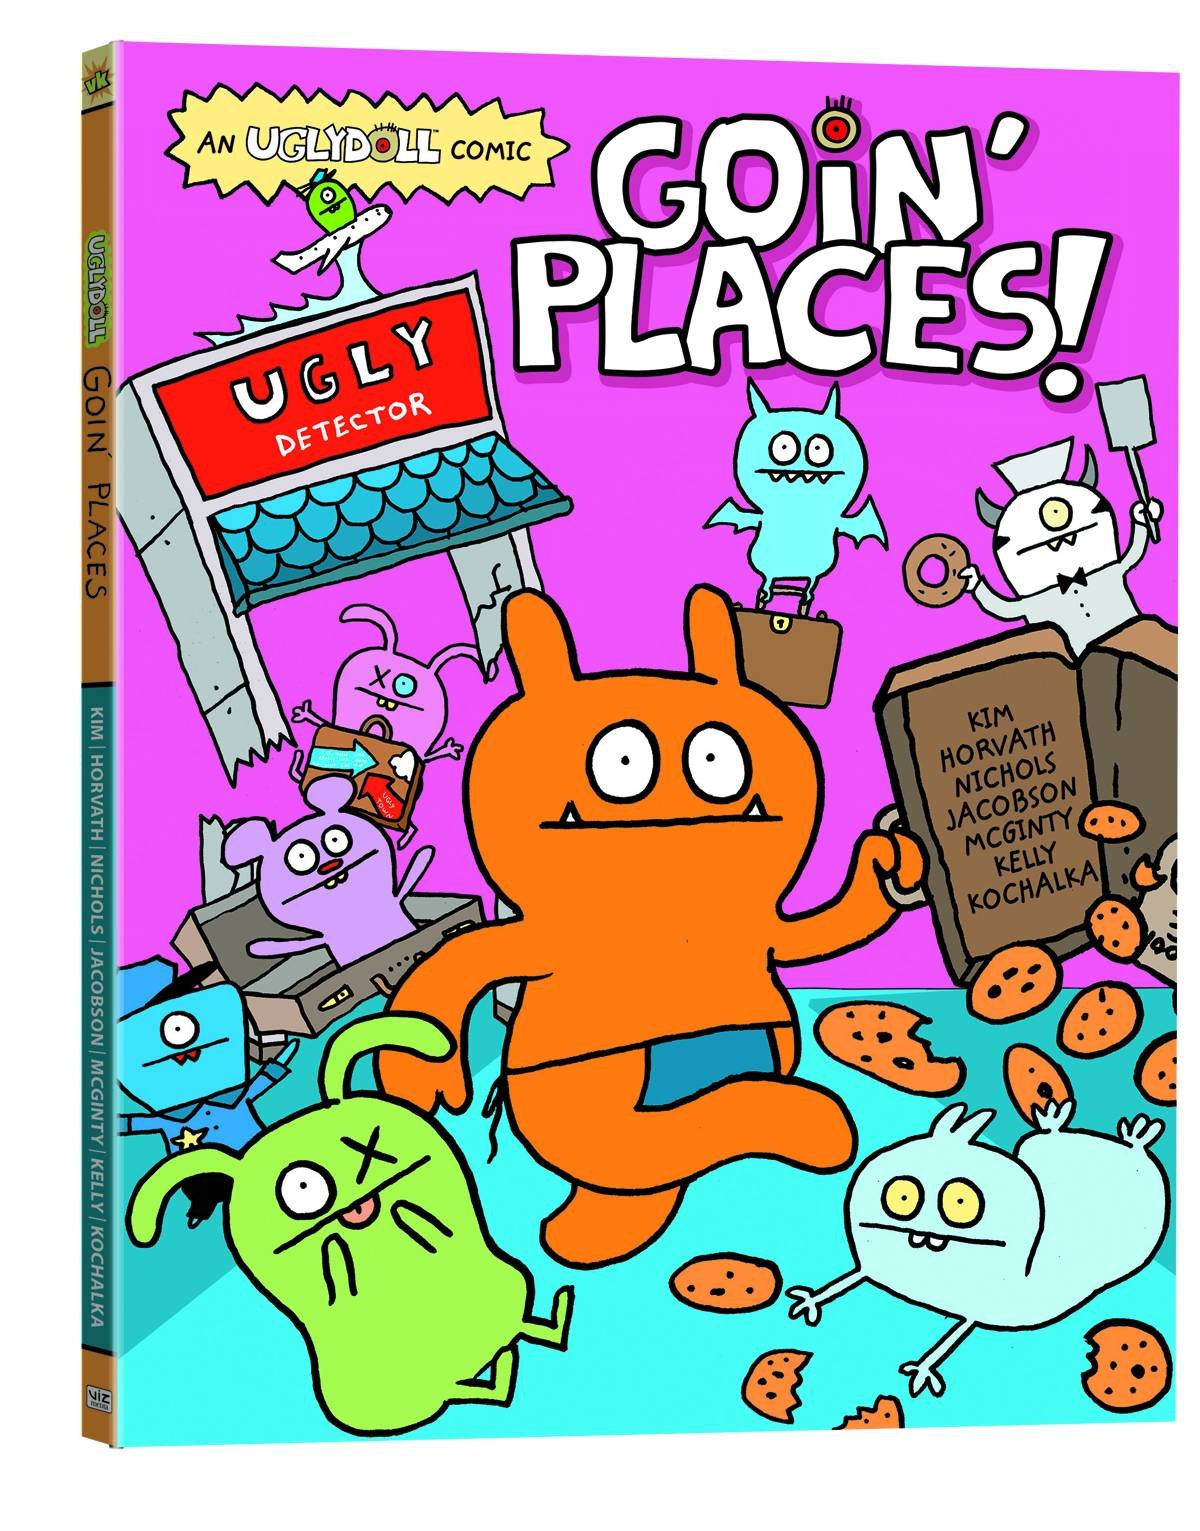 uglydoll-goin-places